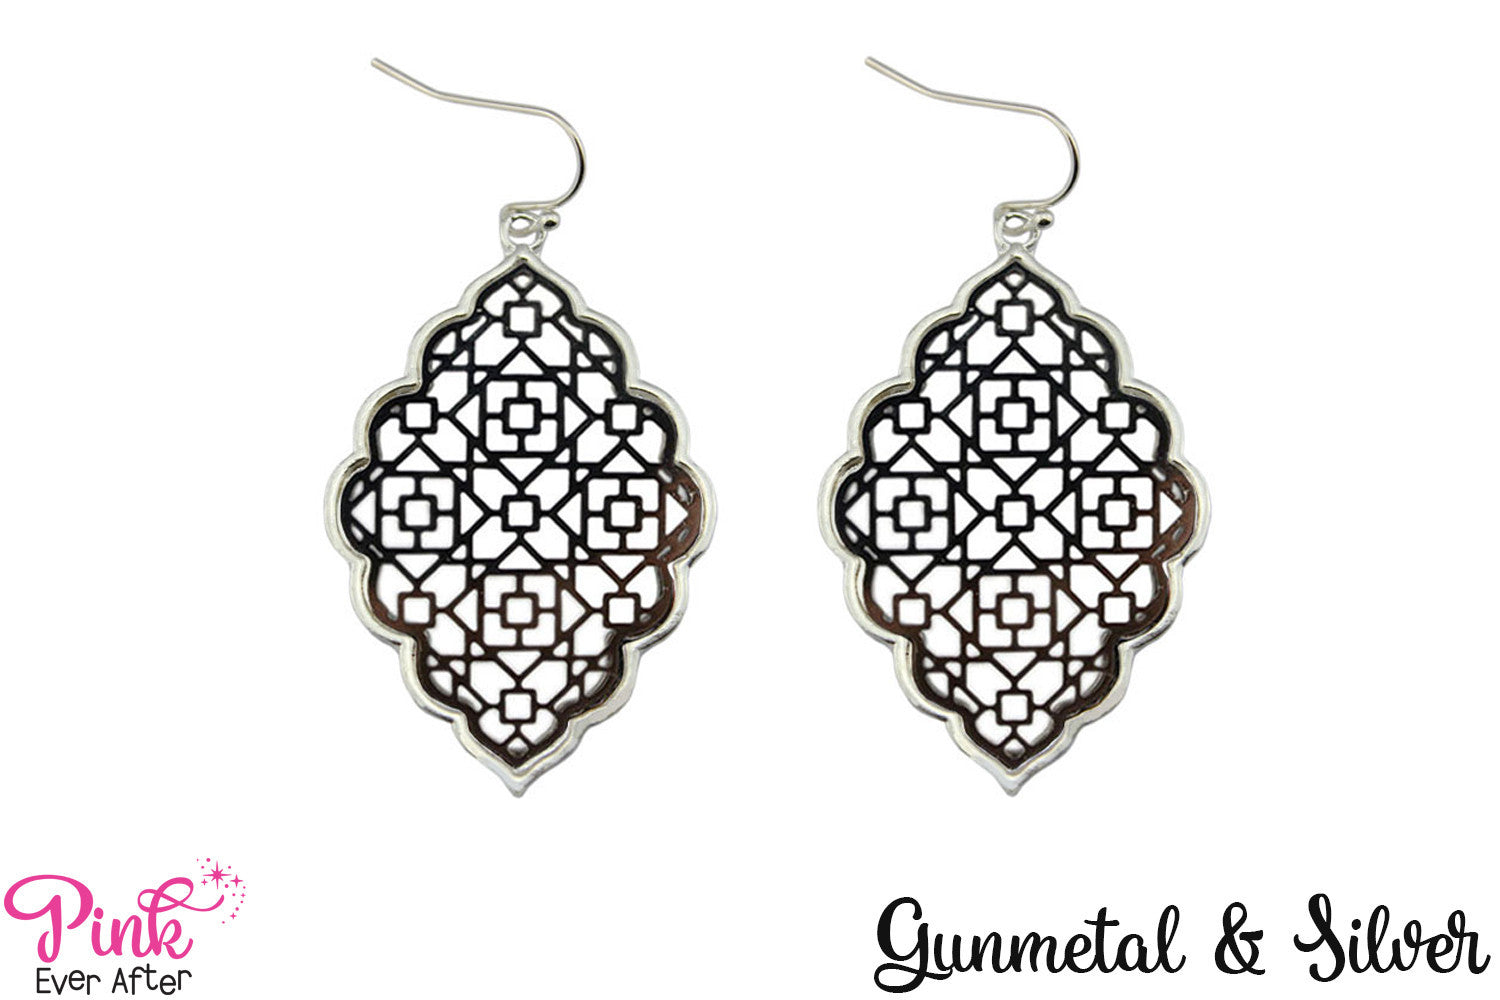 Designer Inspired Filigree Earrings | 8 Styles | Pink Ever After